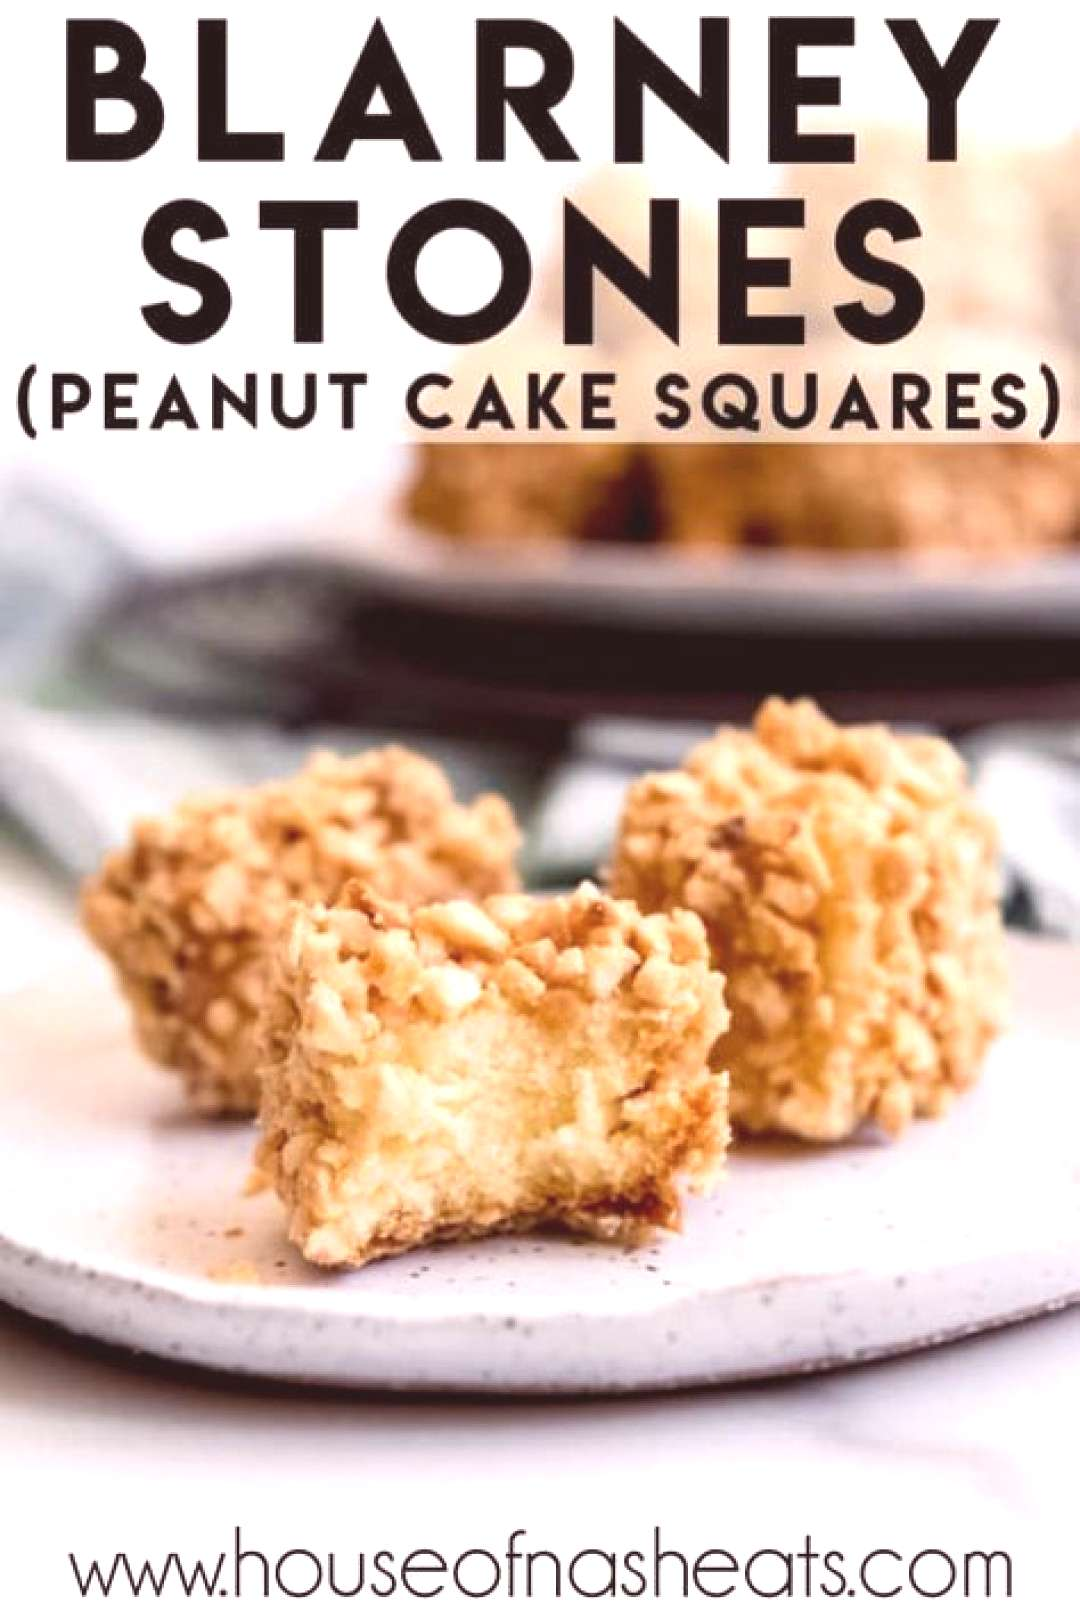 These Blarney Stones [aka Peanut Cake Squares] are salty-sweet bite-sized cakes that are a fun and